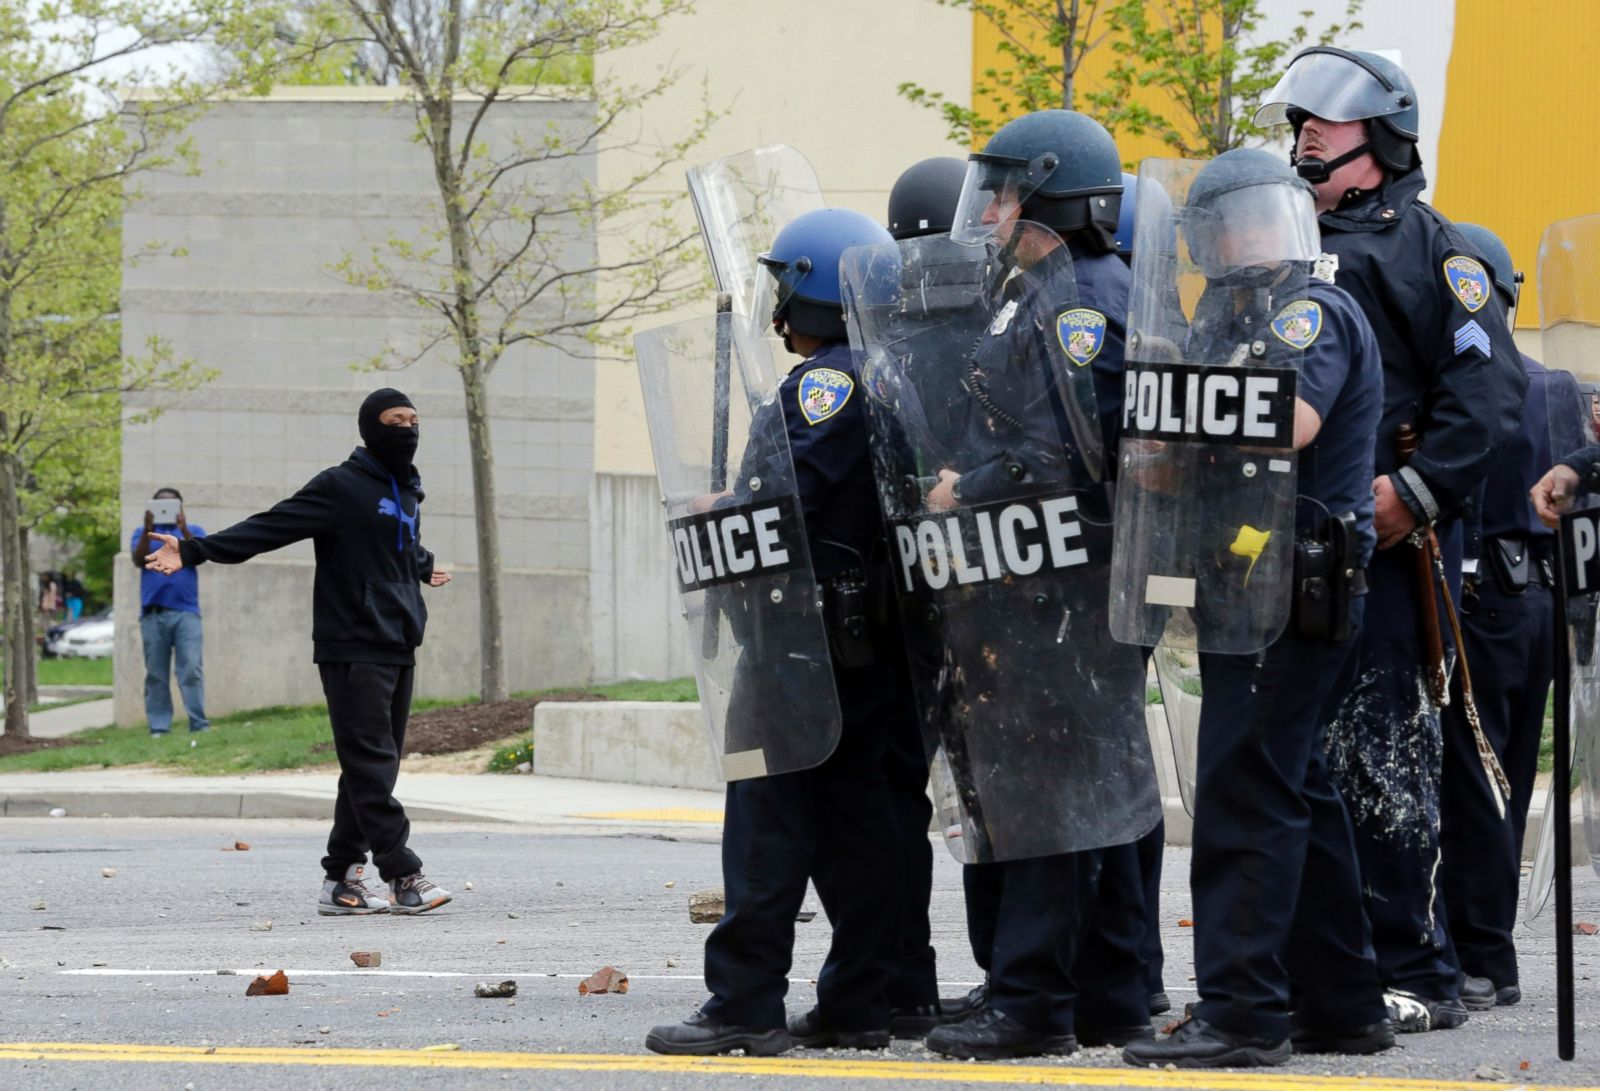 Baltimore police officers in riot gear push protestors back along - Baltimore Police Officers In Riot Gear Push Protestors Back Along 16